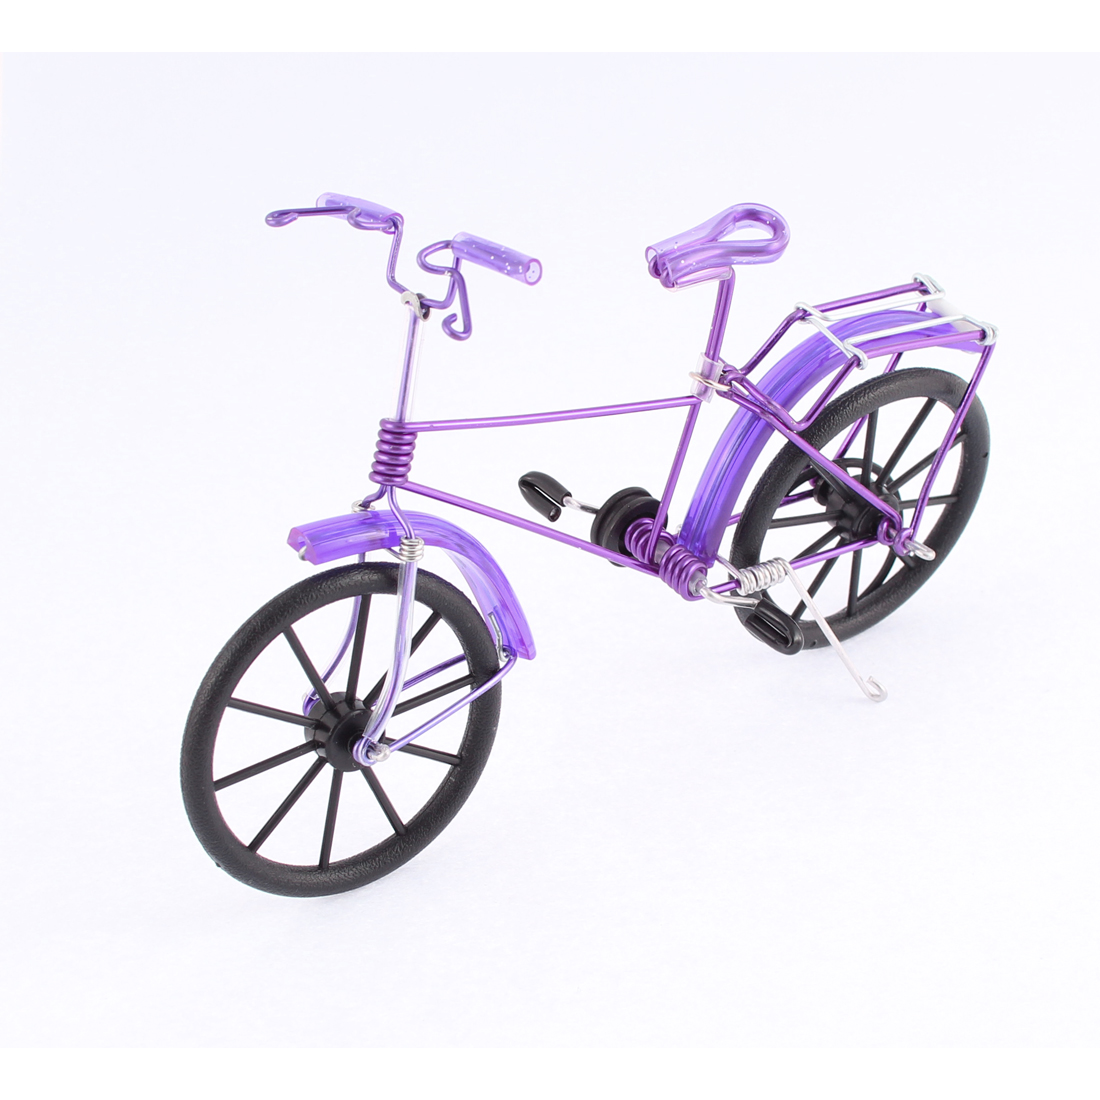 Cycling Collection Racing Bike Model Home Decor Gift Purple